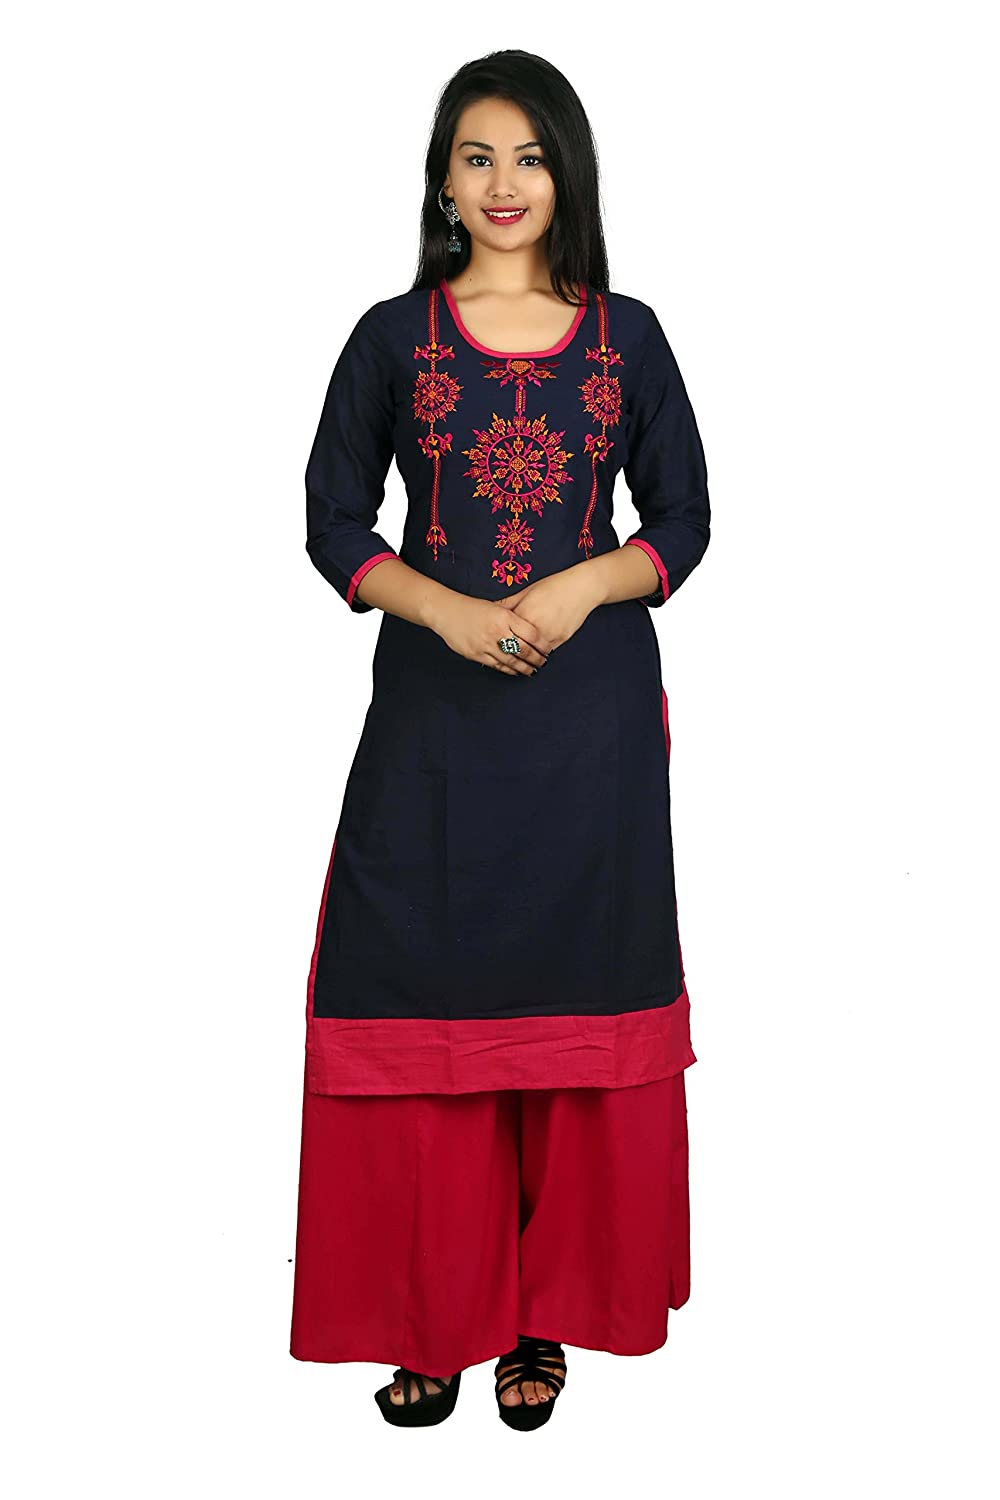 Blue Embroidered 3/4 Sleeve Cotton Women's Kurta and Palazzo Set Indian Handicrfats Export D9-Blue-Red-M